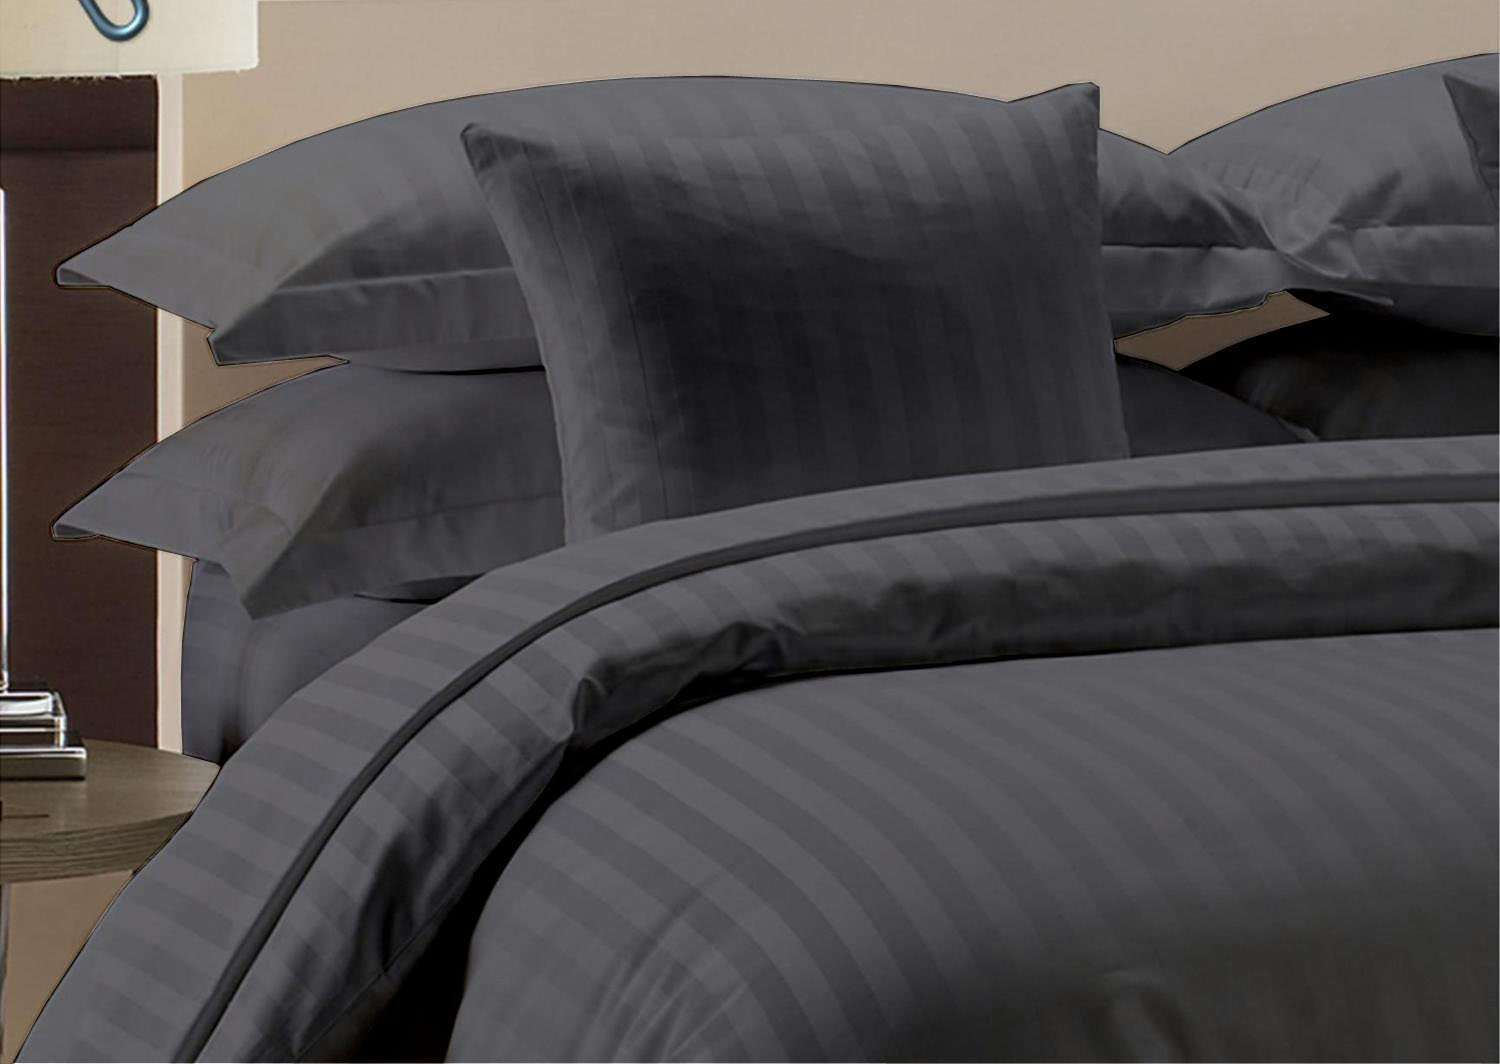 Hotel Quality Heavy 1000TC Zipper Closer 3pc Duvet Cover Set Damask Dark Grey Striped Super king (98 x 108) Egyptian Cotton Expedited Shipping By Precious Star Linen